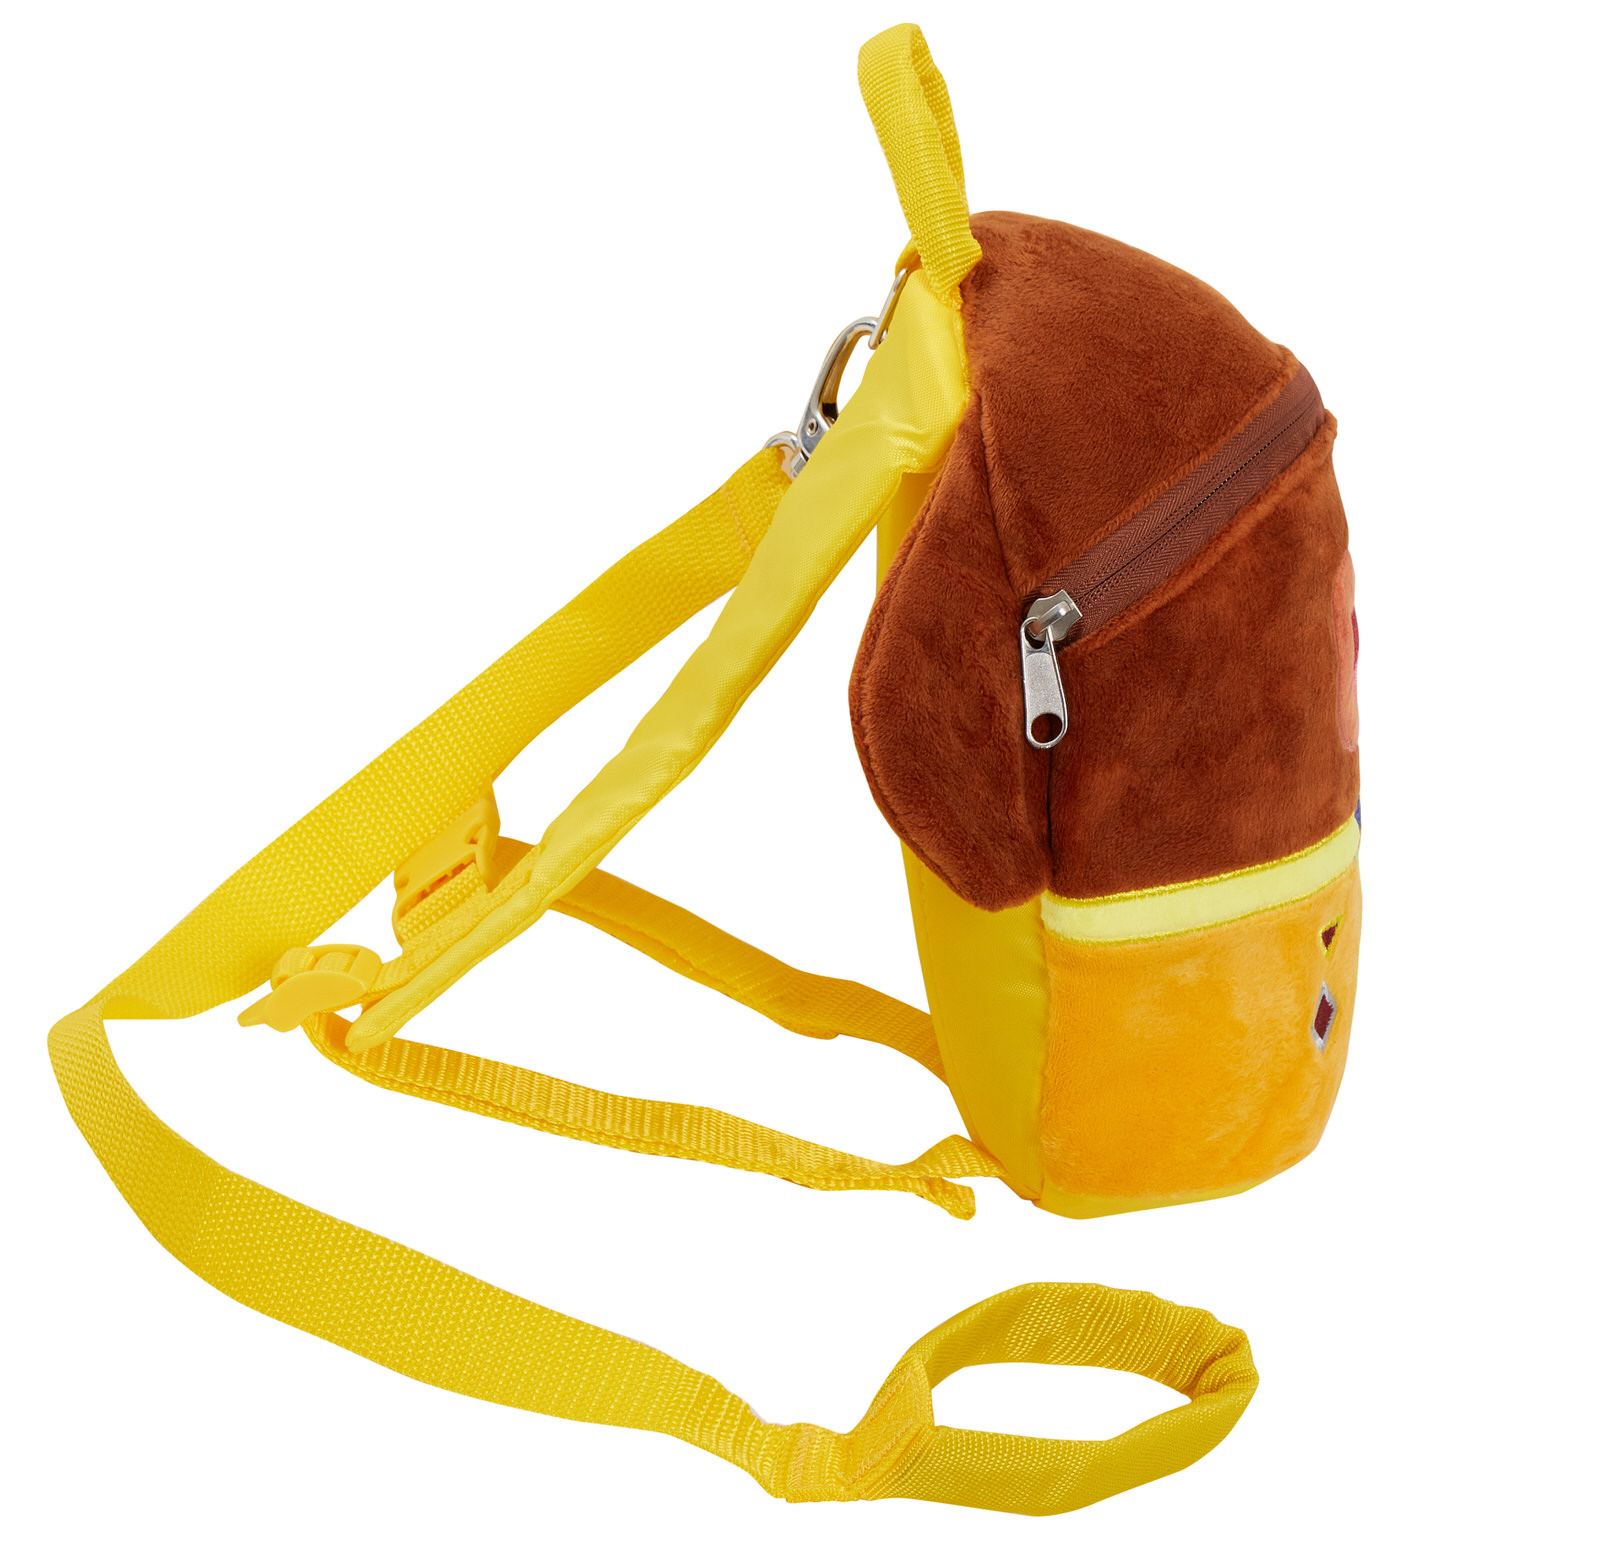 Plush-Hey-Duggee-Backpack-With-Reins-Kids-Detachable-Safety-Harness-Nursery-Bag thumbnail 8